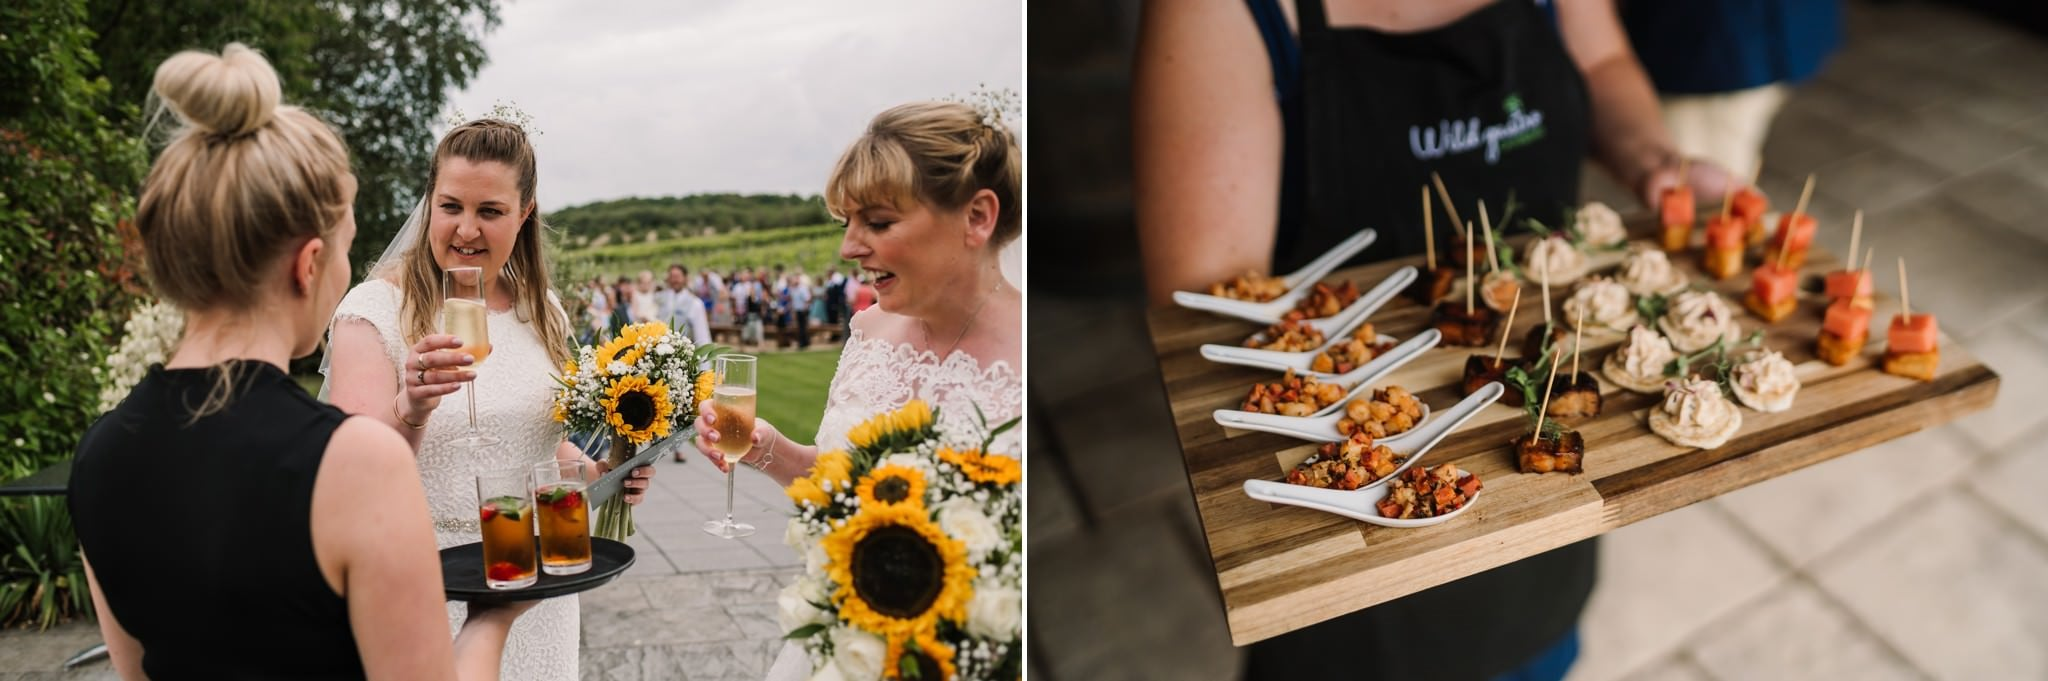 Wild Gastro at Three Choirs Vineyard wedding